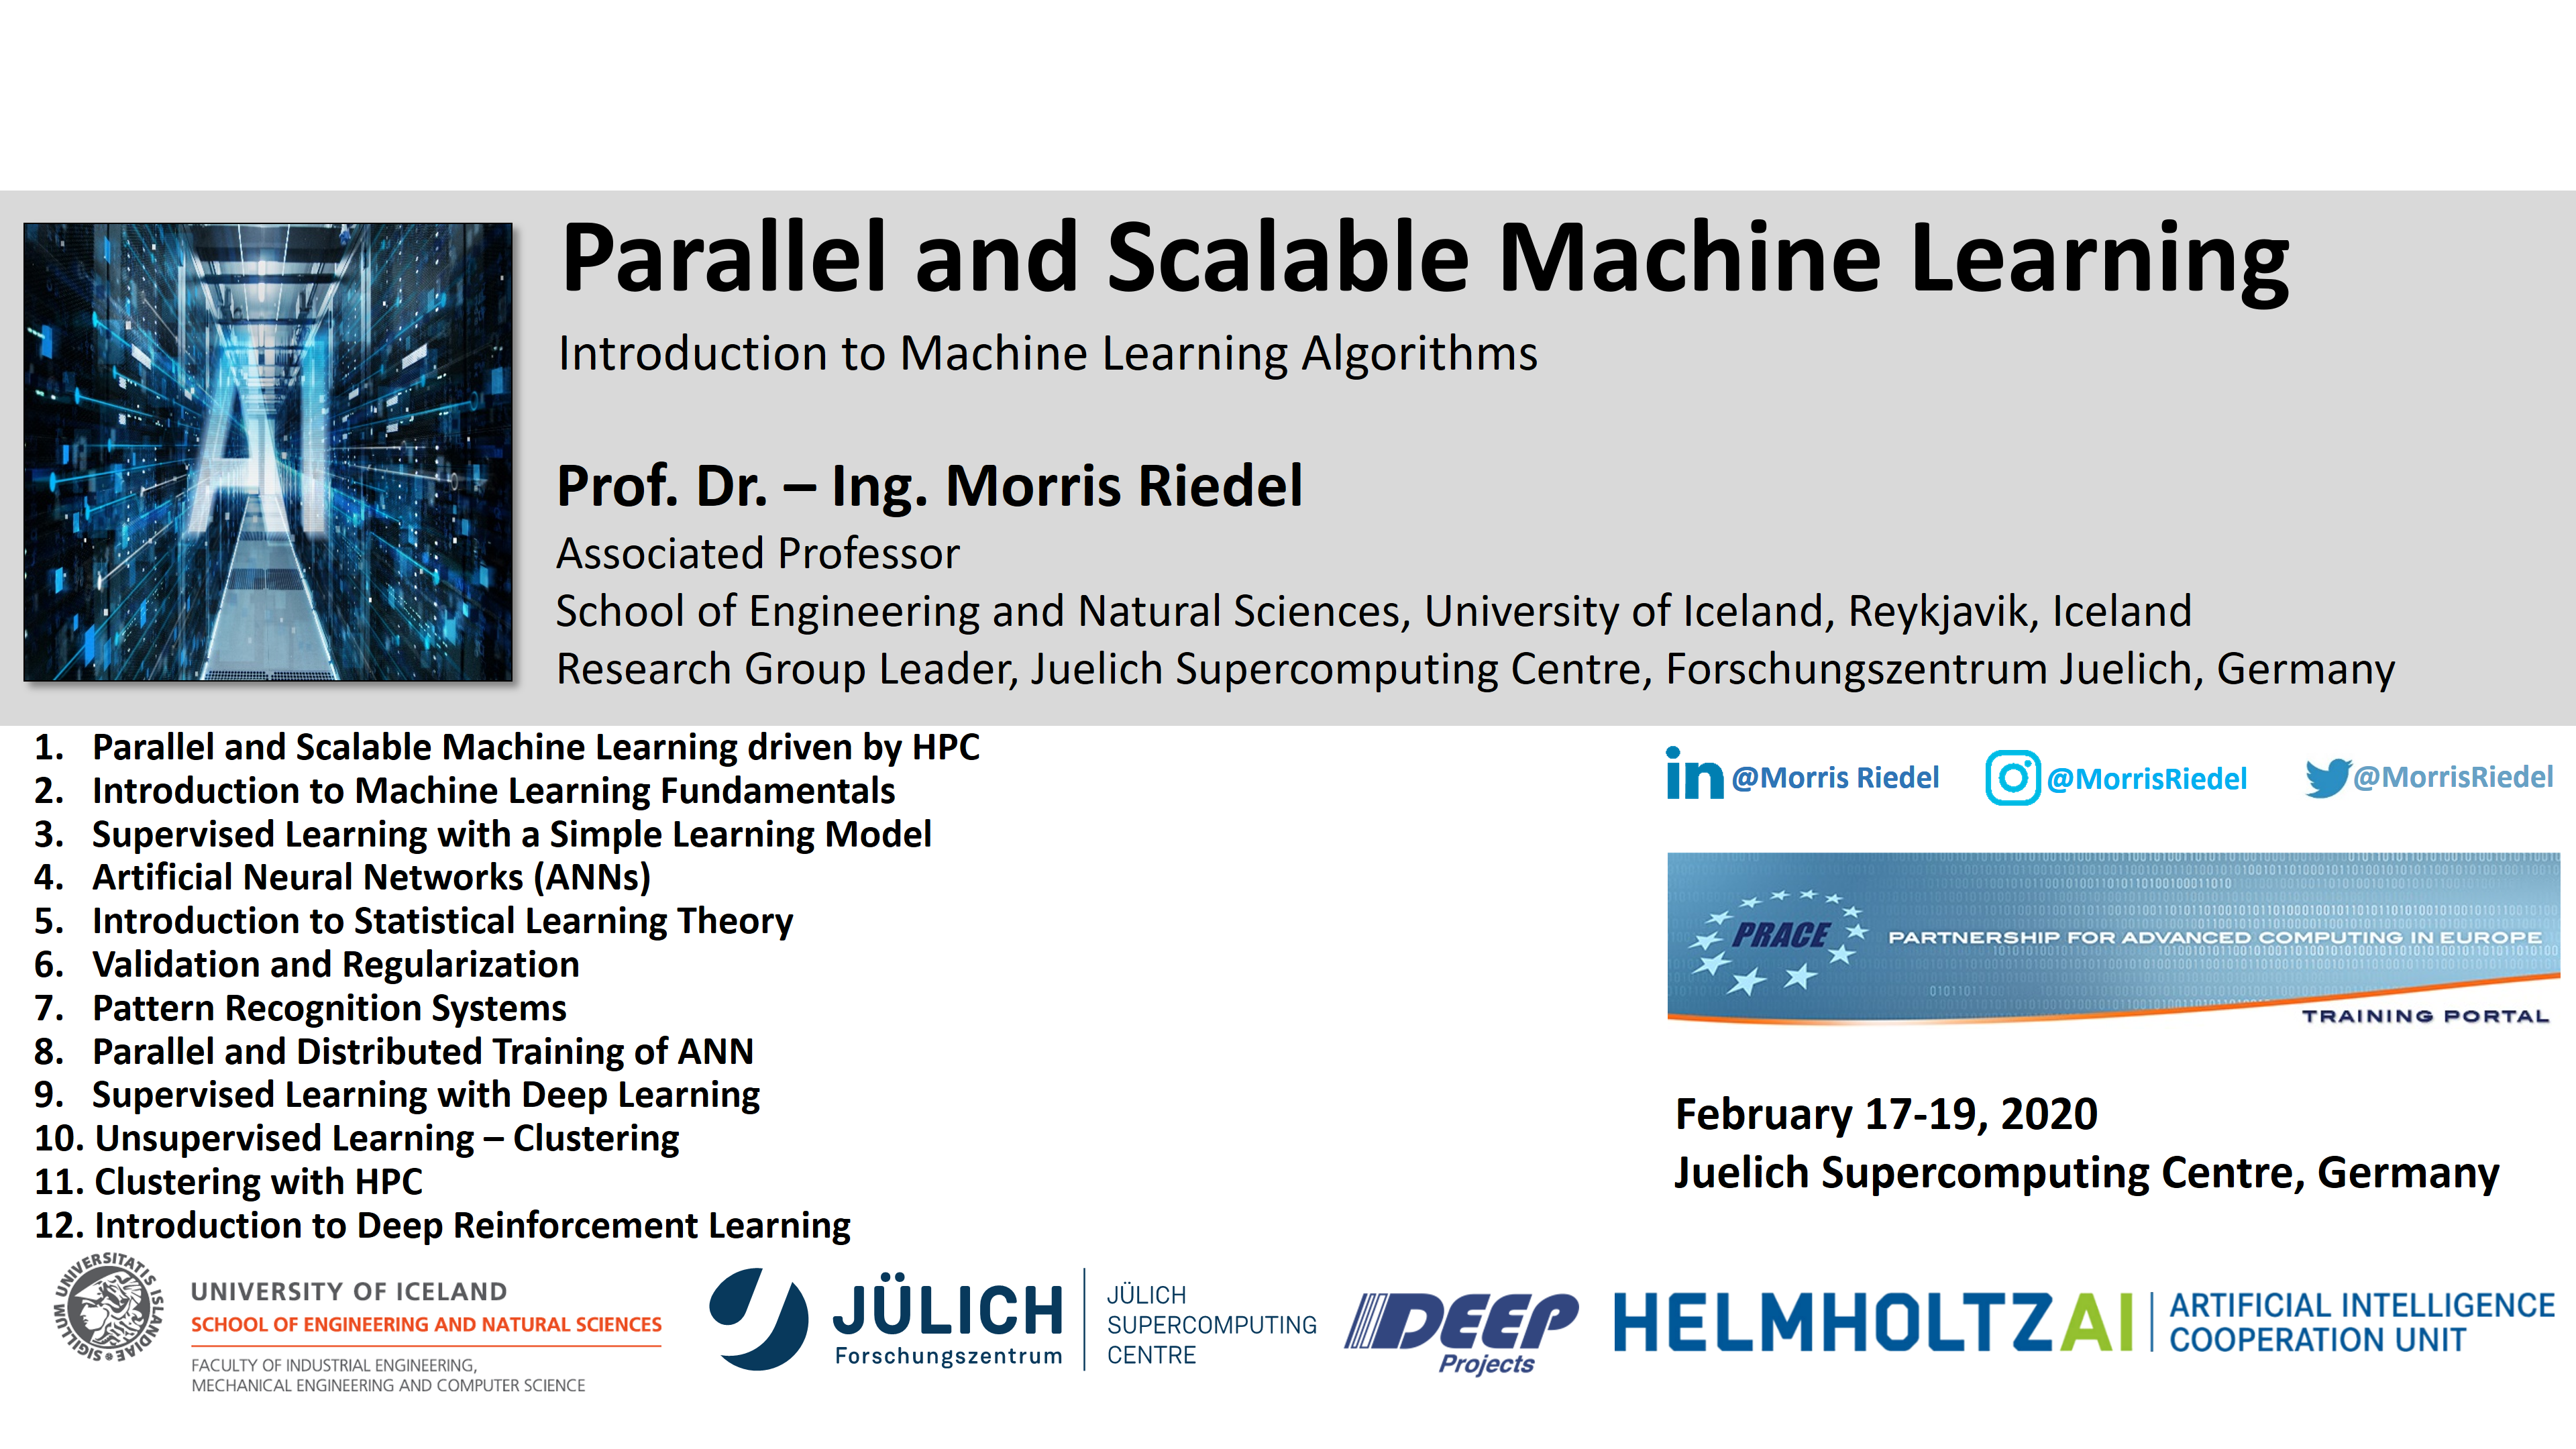 Parallel and Scalable Machine Learning Introduction Morris Riedel